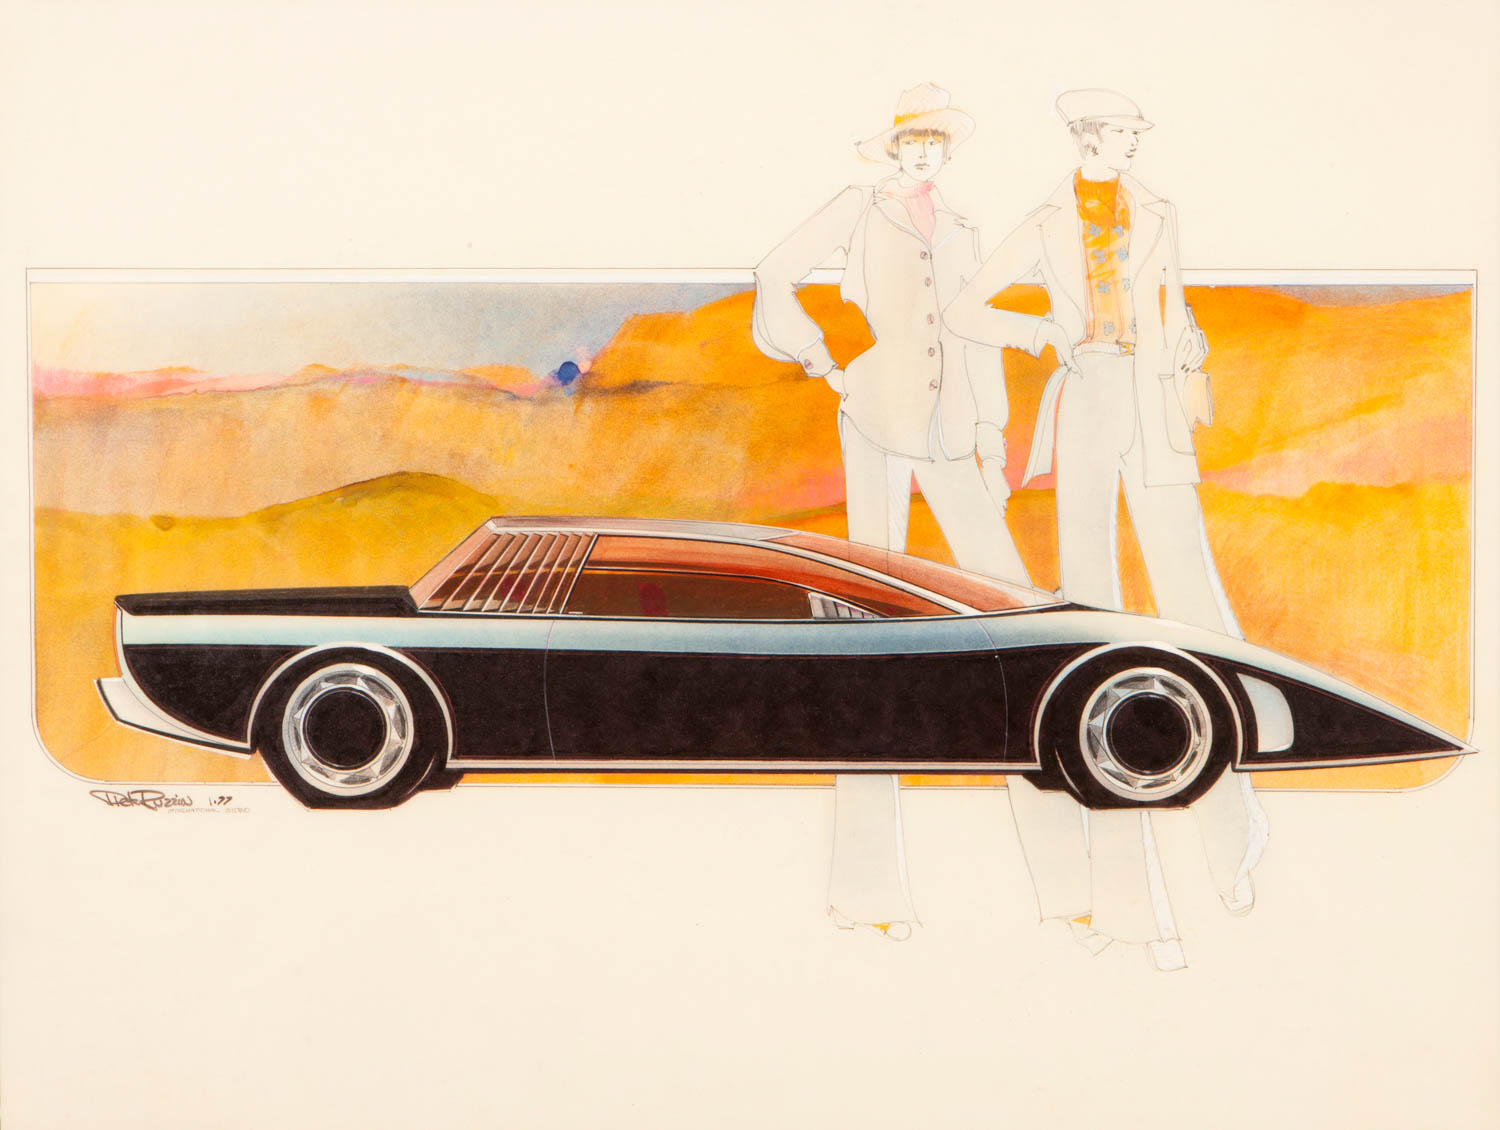 """""""I created this sport coupe in the International Design Studio in June 1974 as a proposal to expand the use of the frontwheel- drive X-car drivetrain. It was drawn, rendered, then cut out and glued over a watercolor-painted background. There is a strong contrast between the two fashionable young women in a largerthan- life scale and the low coupe."""" —Dick Ruzzin"""